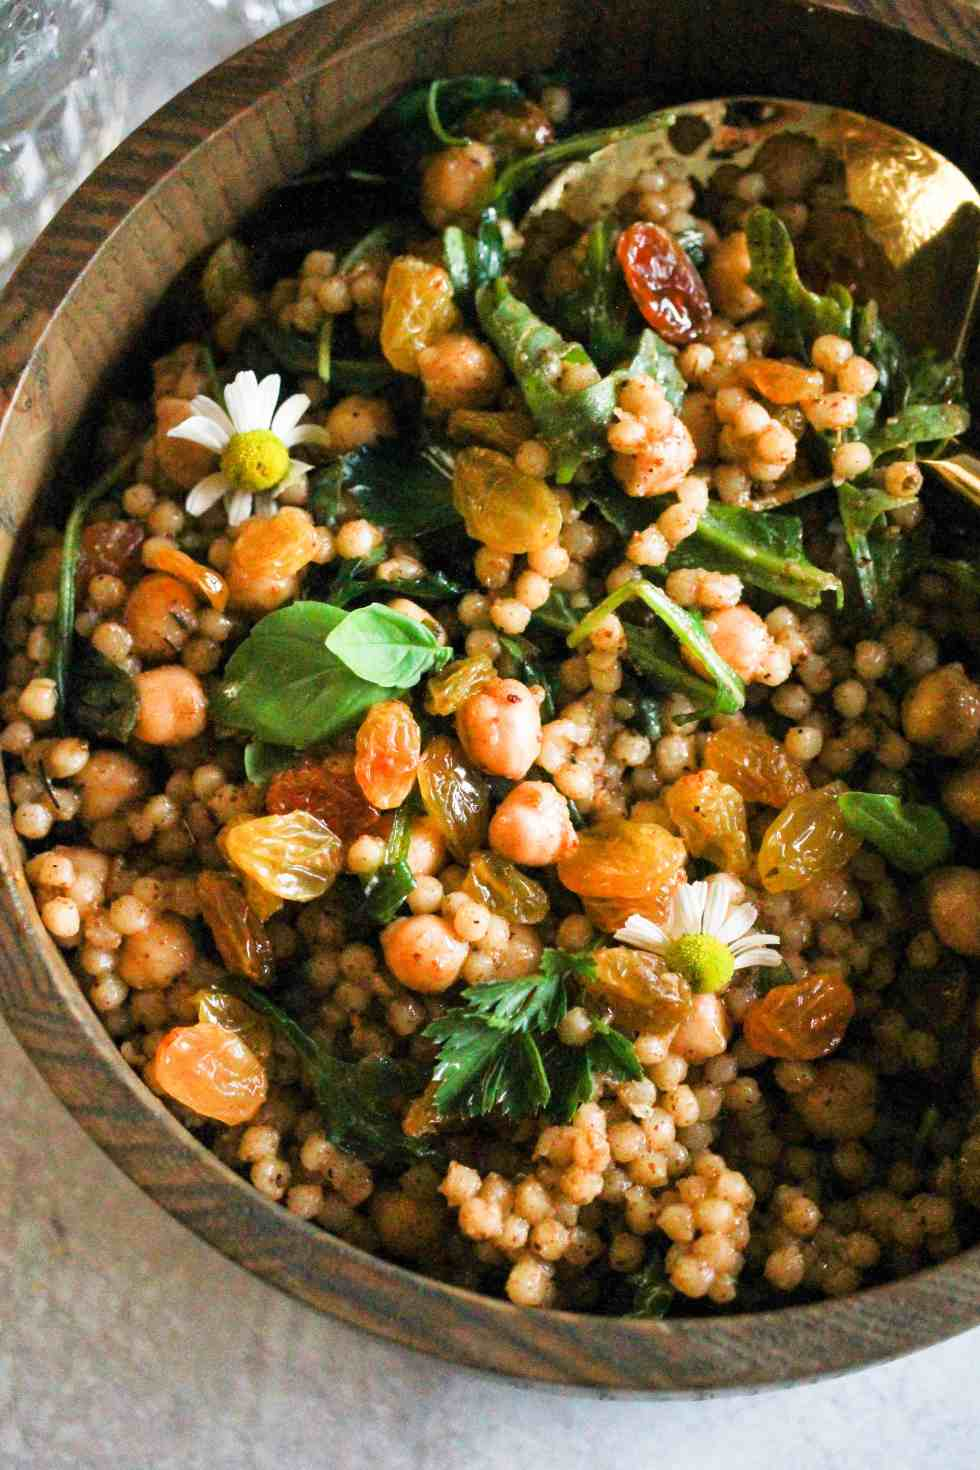 Closeup image of Israeli Couscous salad with chickpeas in a wooden bowl.